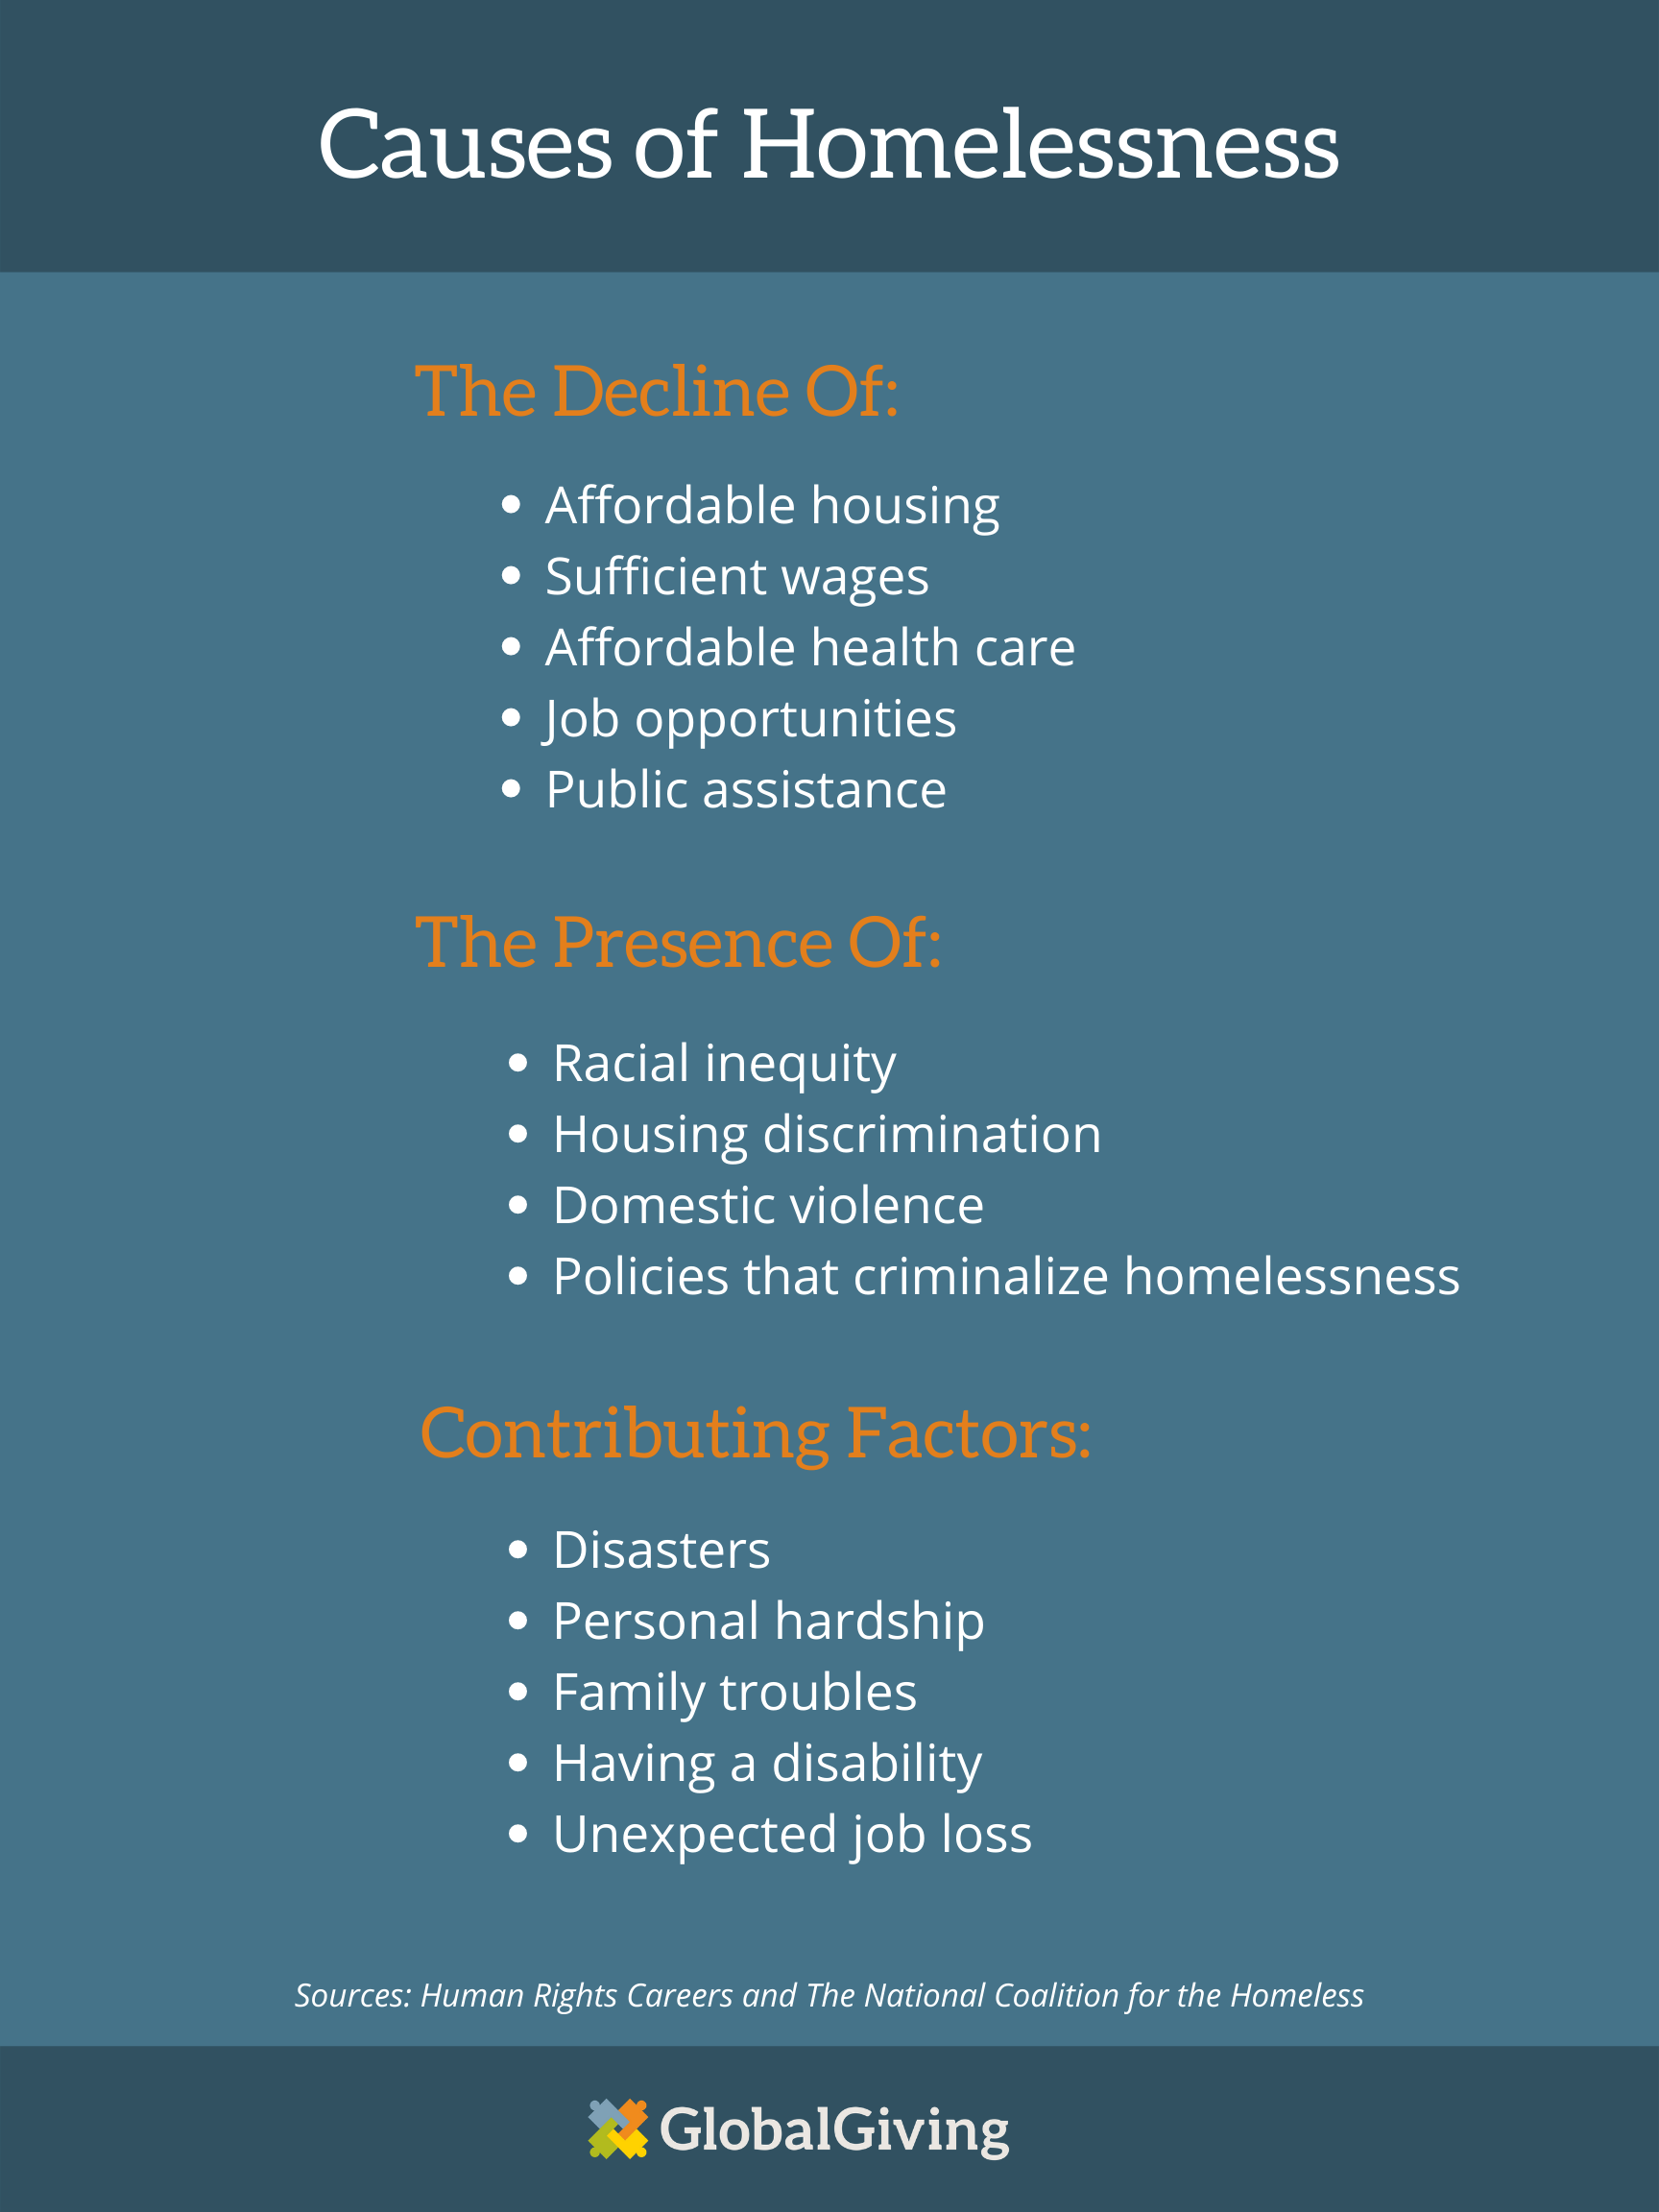 Graphic that states the causes of homelessness in America